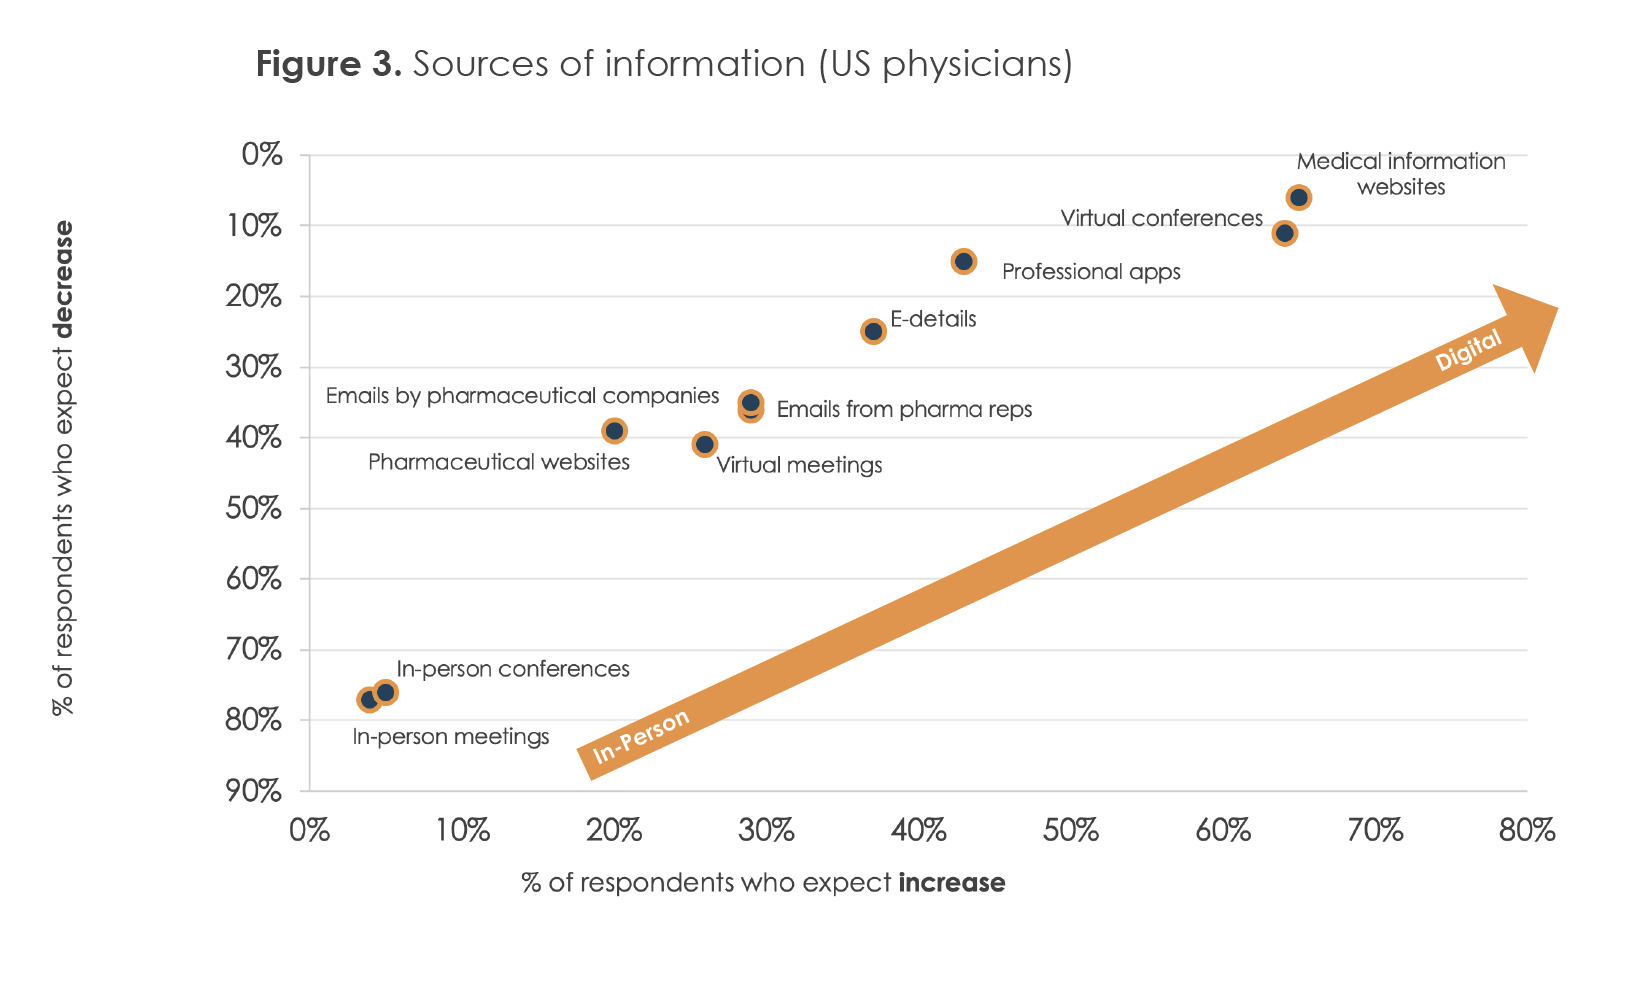 Figure 3. Sources of information (US physicians)